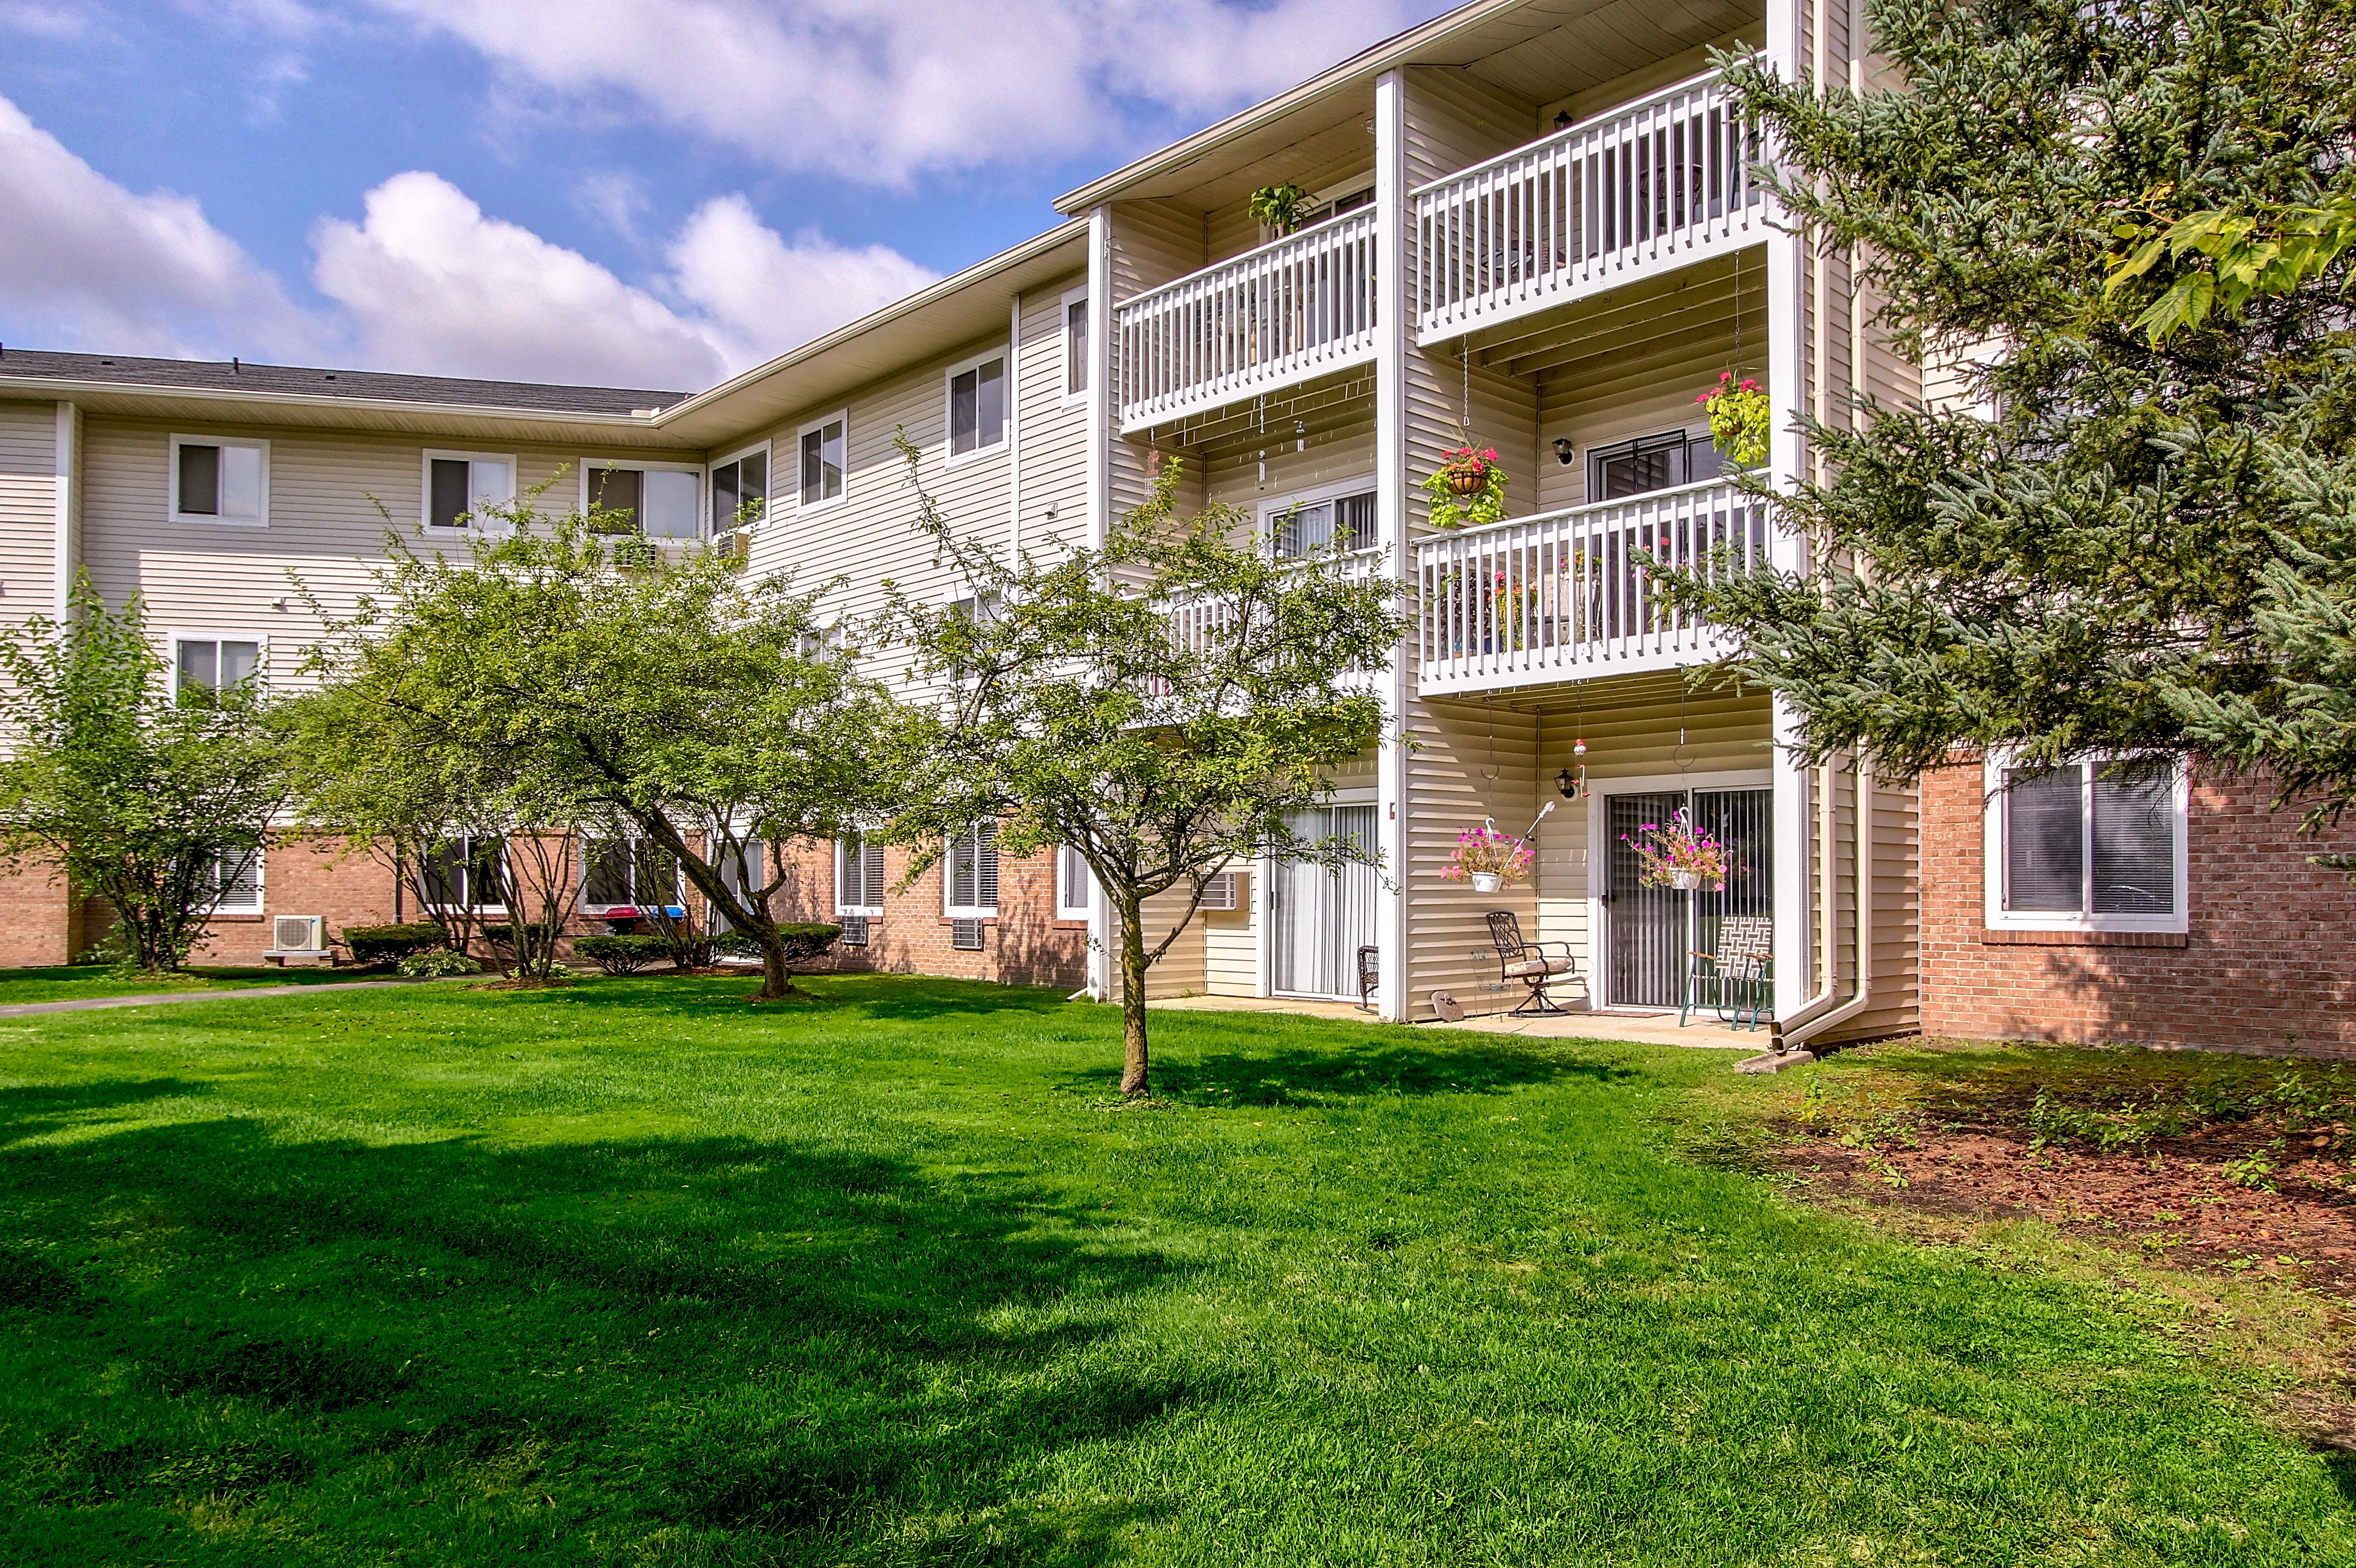 Apartments Near Madonna Parkside of Livonia - Independent Senior Living for Madonna University Students in Livonia, MI